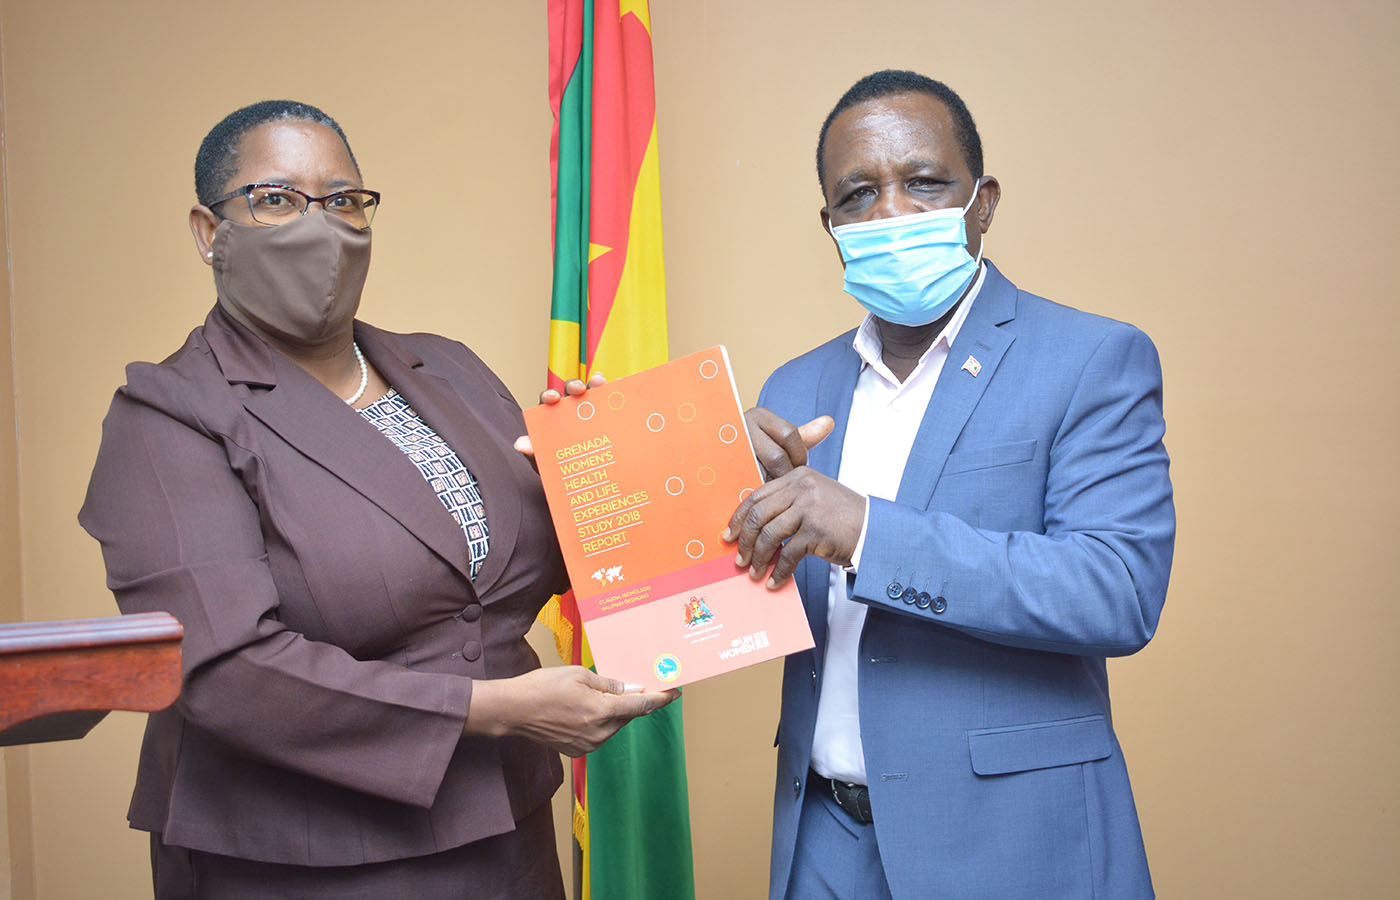 Elaine McQueen in brown suit presents publication to Prime Minister, Dr. Keith Mitchell who is wearing a blue suite. Grenada's flag is int he background